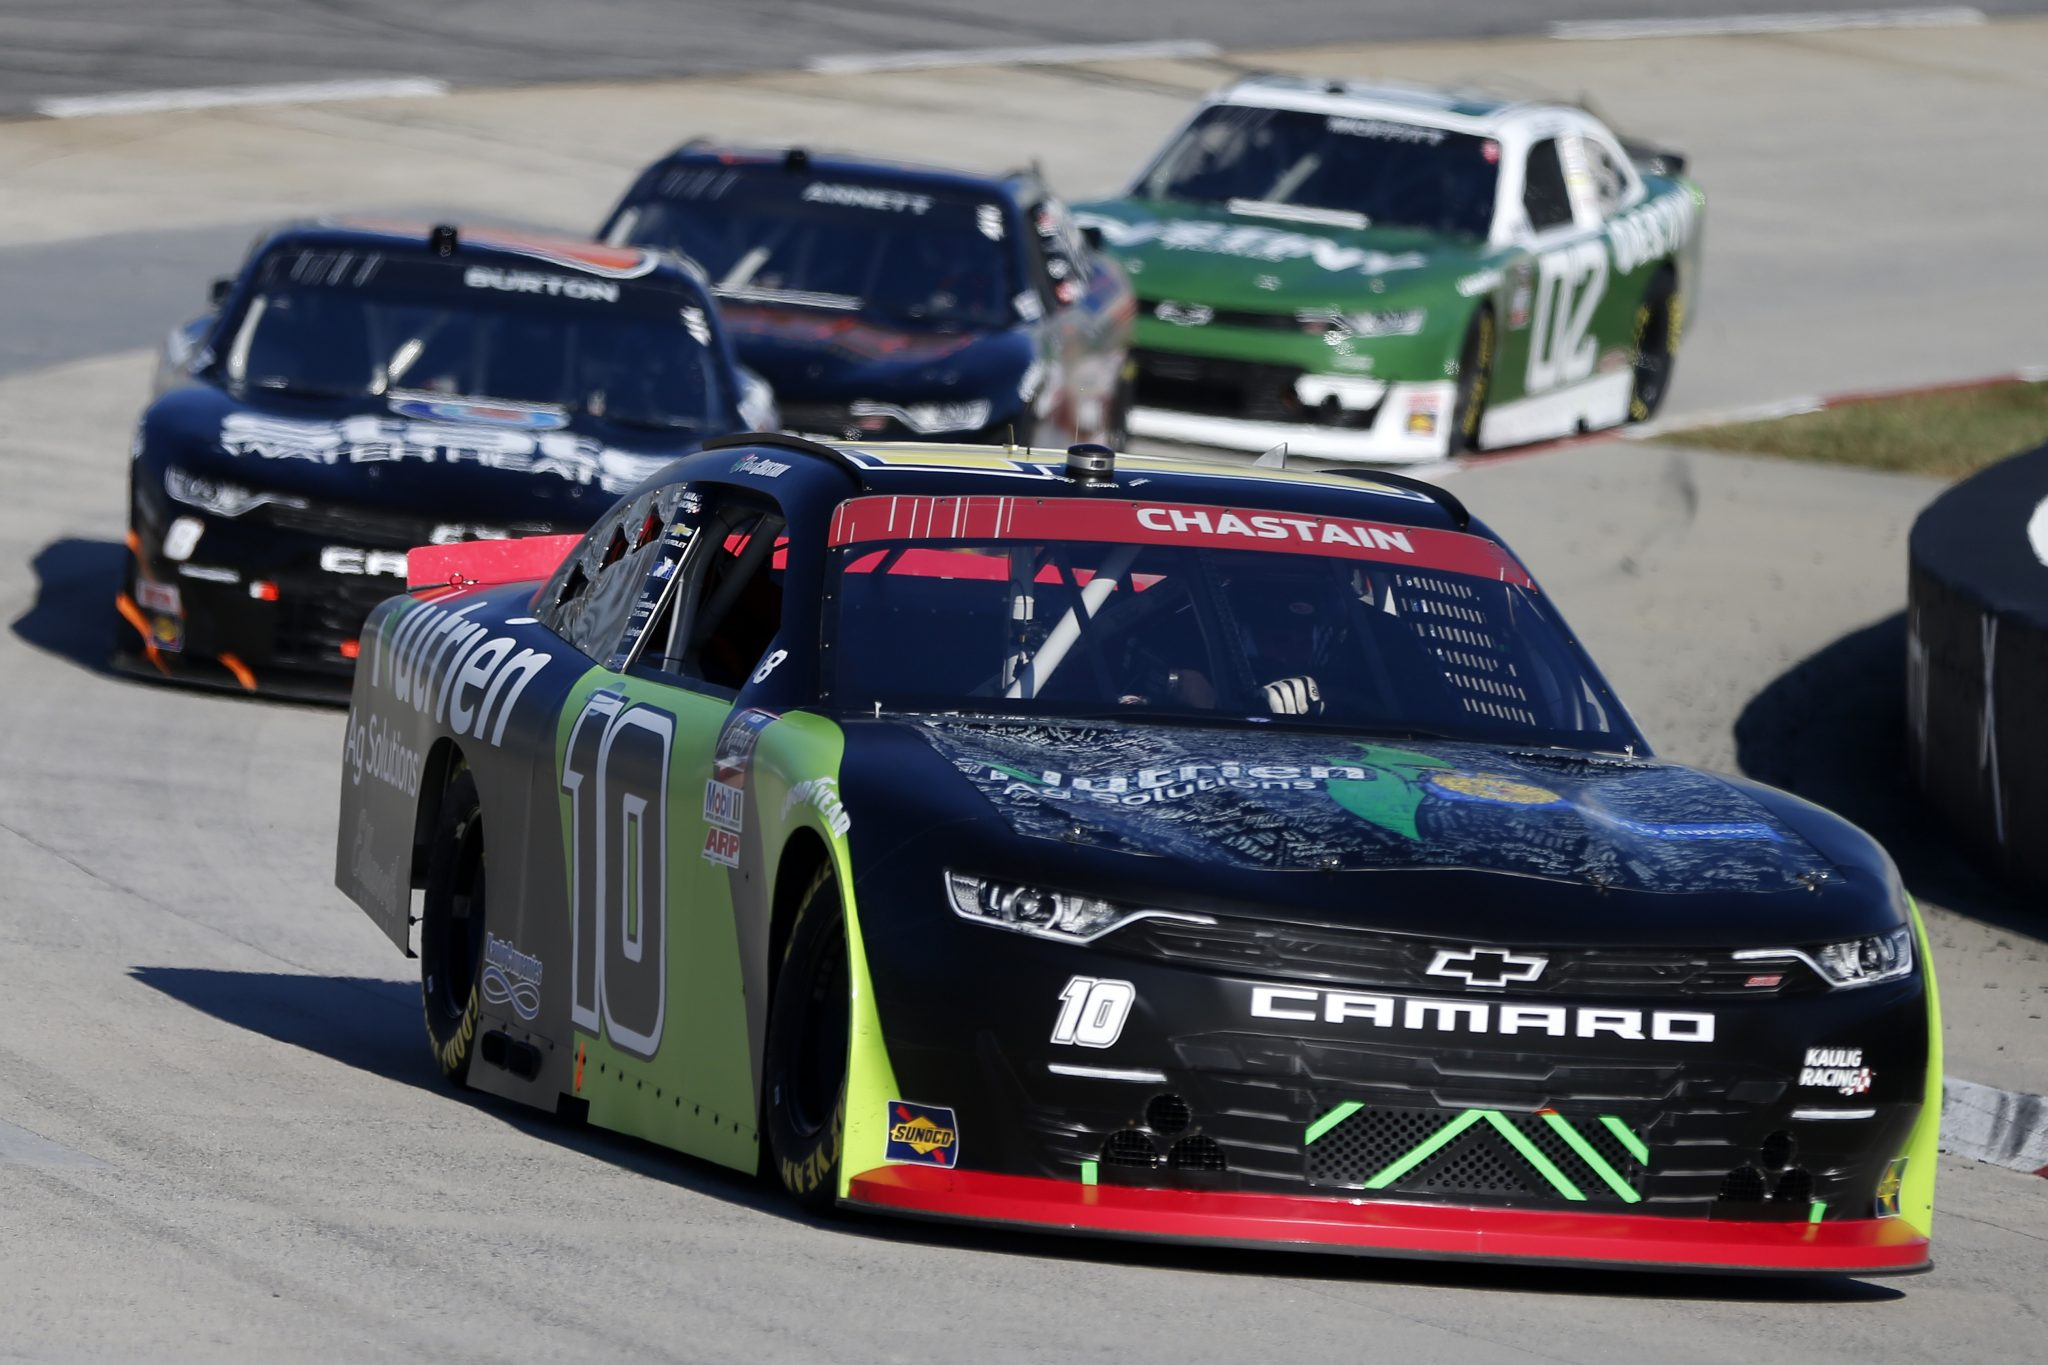 MARTINSVILLE, VIRGINIA - OCTOBER 31: Ross Chastain, driver of the #10 Nutrien Ag Solutions Chevrolet, leads the field during the NASCAR Xfinity Series Draft Top 250 at Martinsville Speedway on October 31, 2020 in Martinsville, Virginia. (Photo by Brian Lawdermilk/Getty Images) | Getty Images